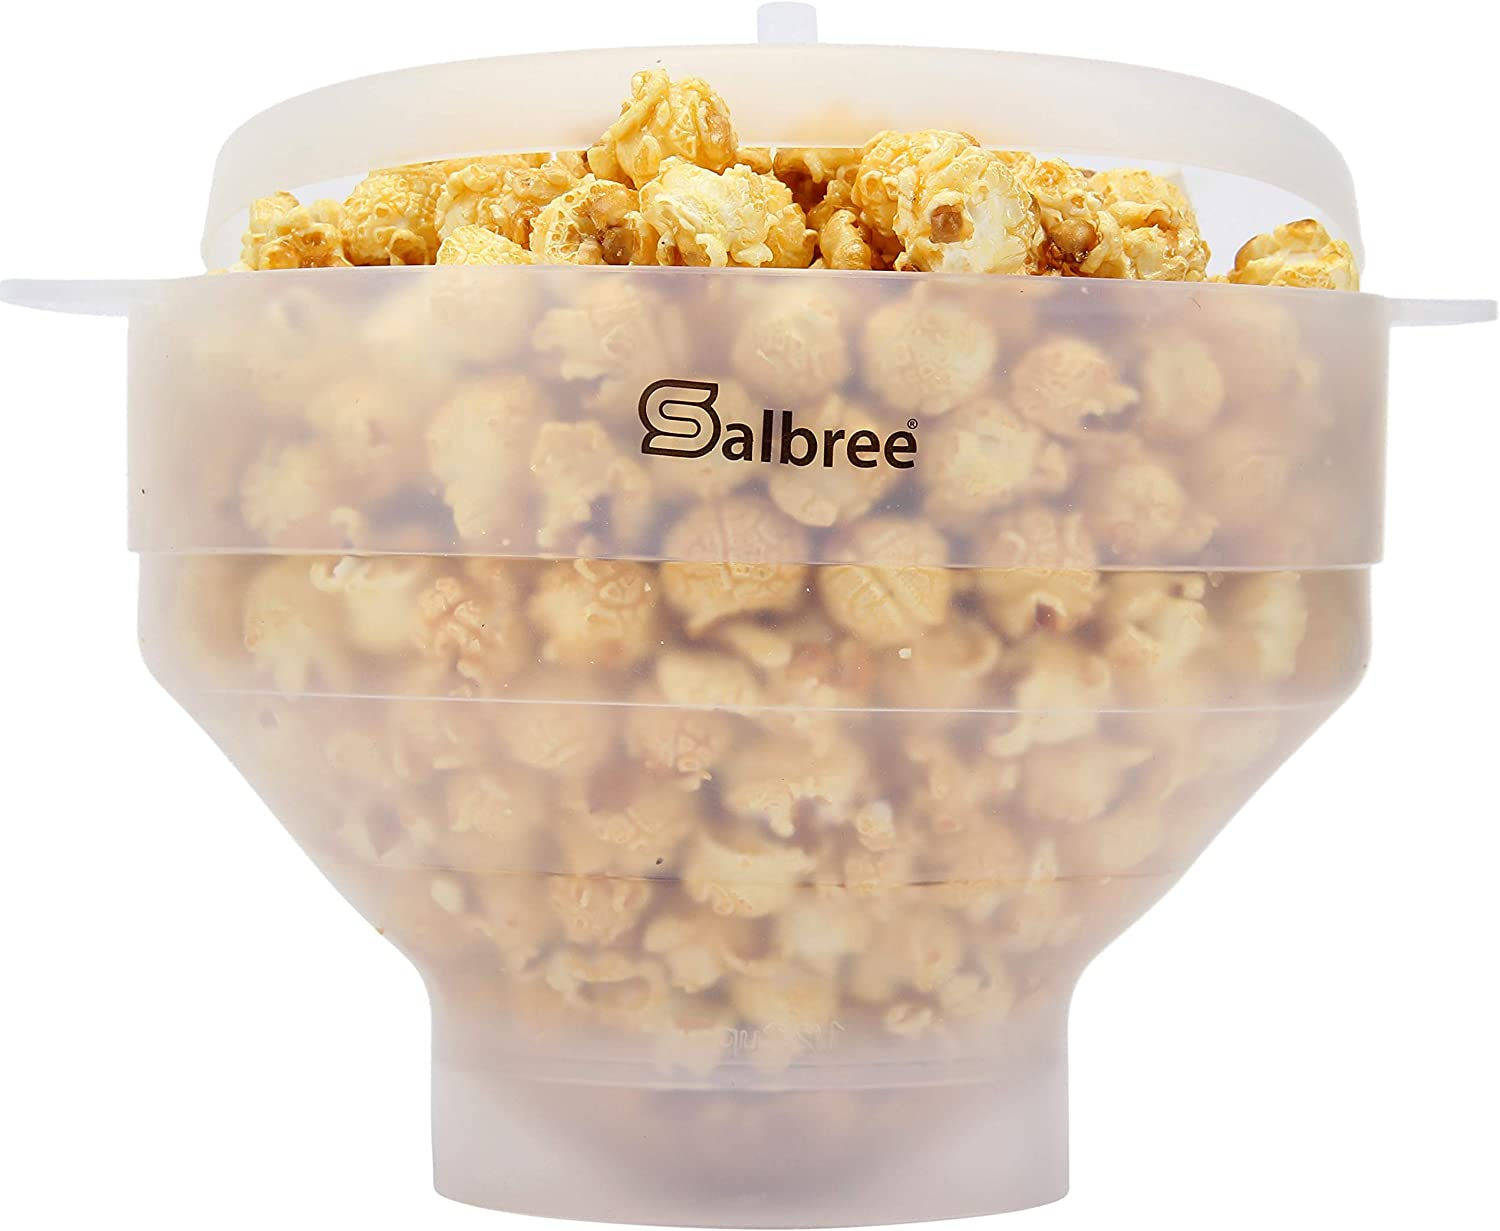 Original Salbree Microwave Popcorn Popper, Silicone Popcorn Maker, Collapsible Bowl - The Most Colors Available (Transparent)